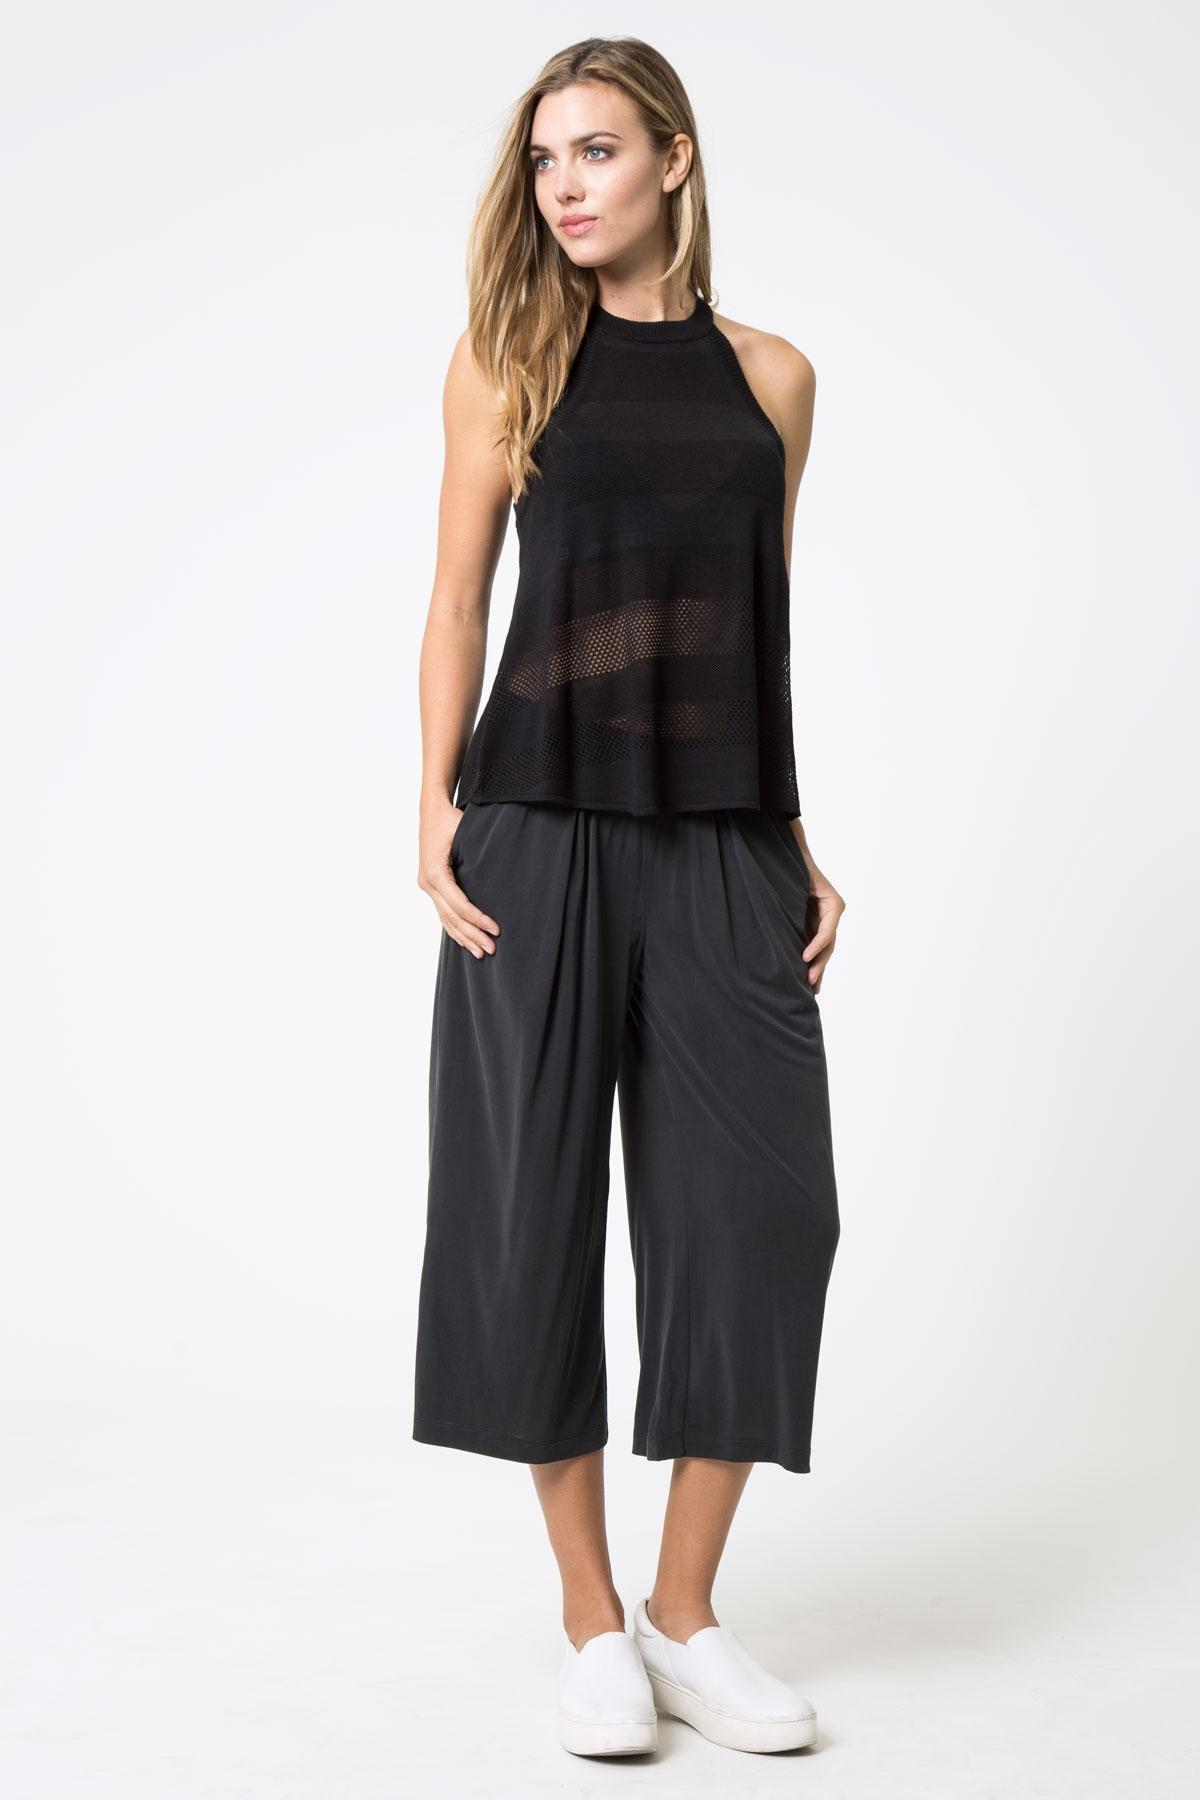 Allude Silk Blend Top - Black